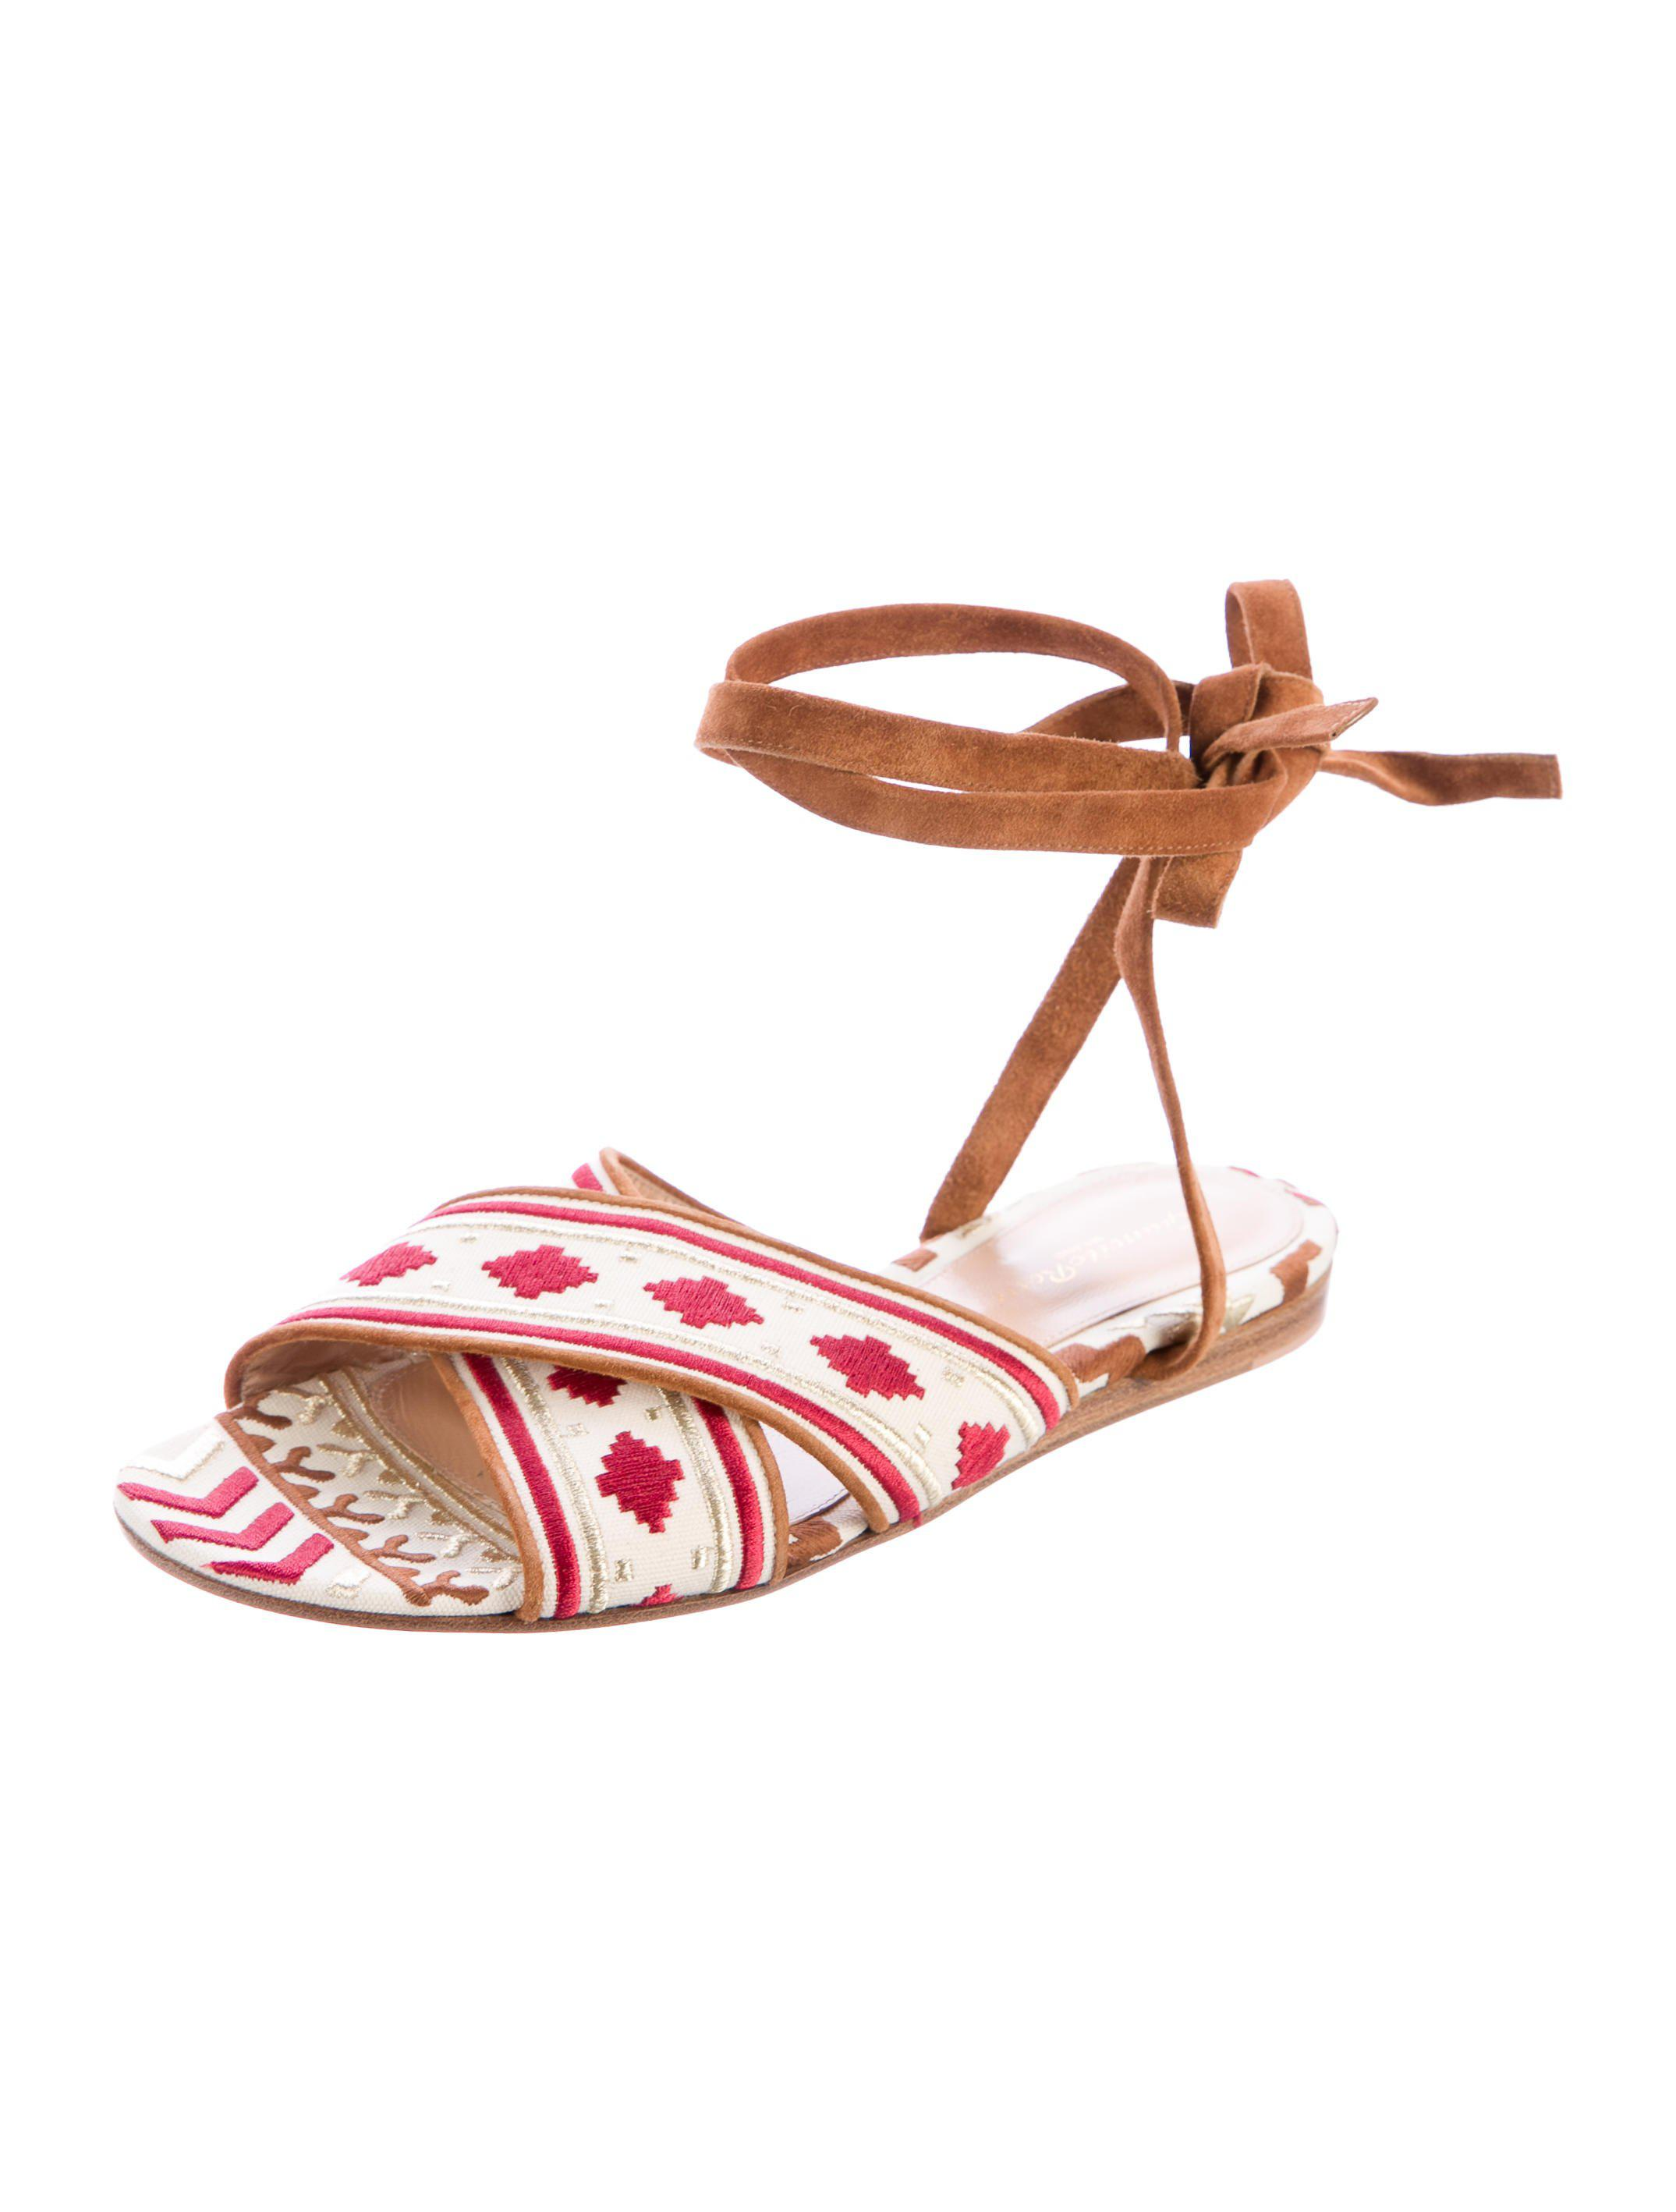 shop for online Gianvito Rossi Cheyenne Wrap-Around Sandals Manchester cheap price EYD6O